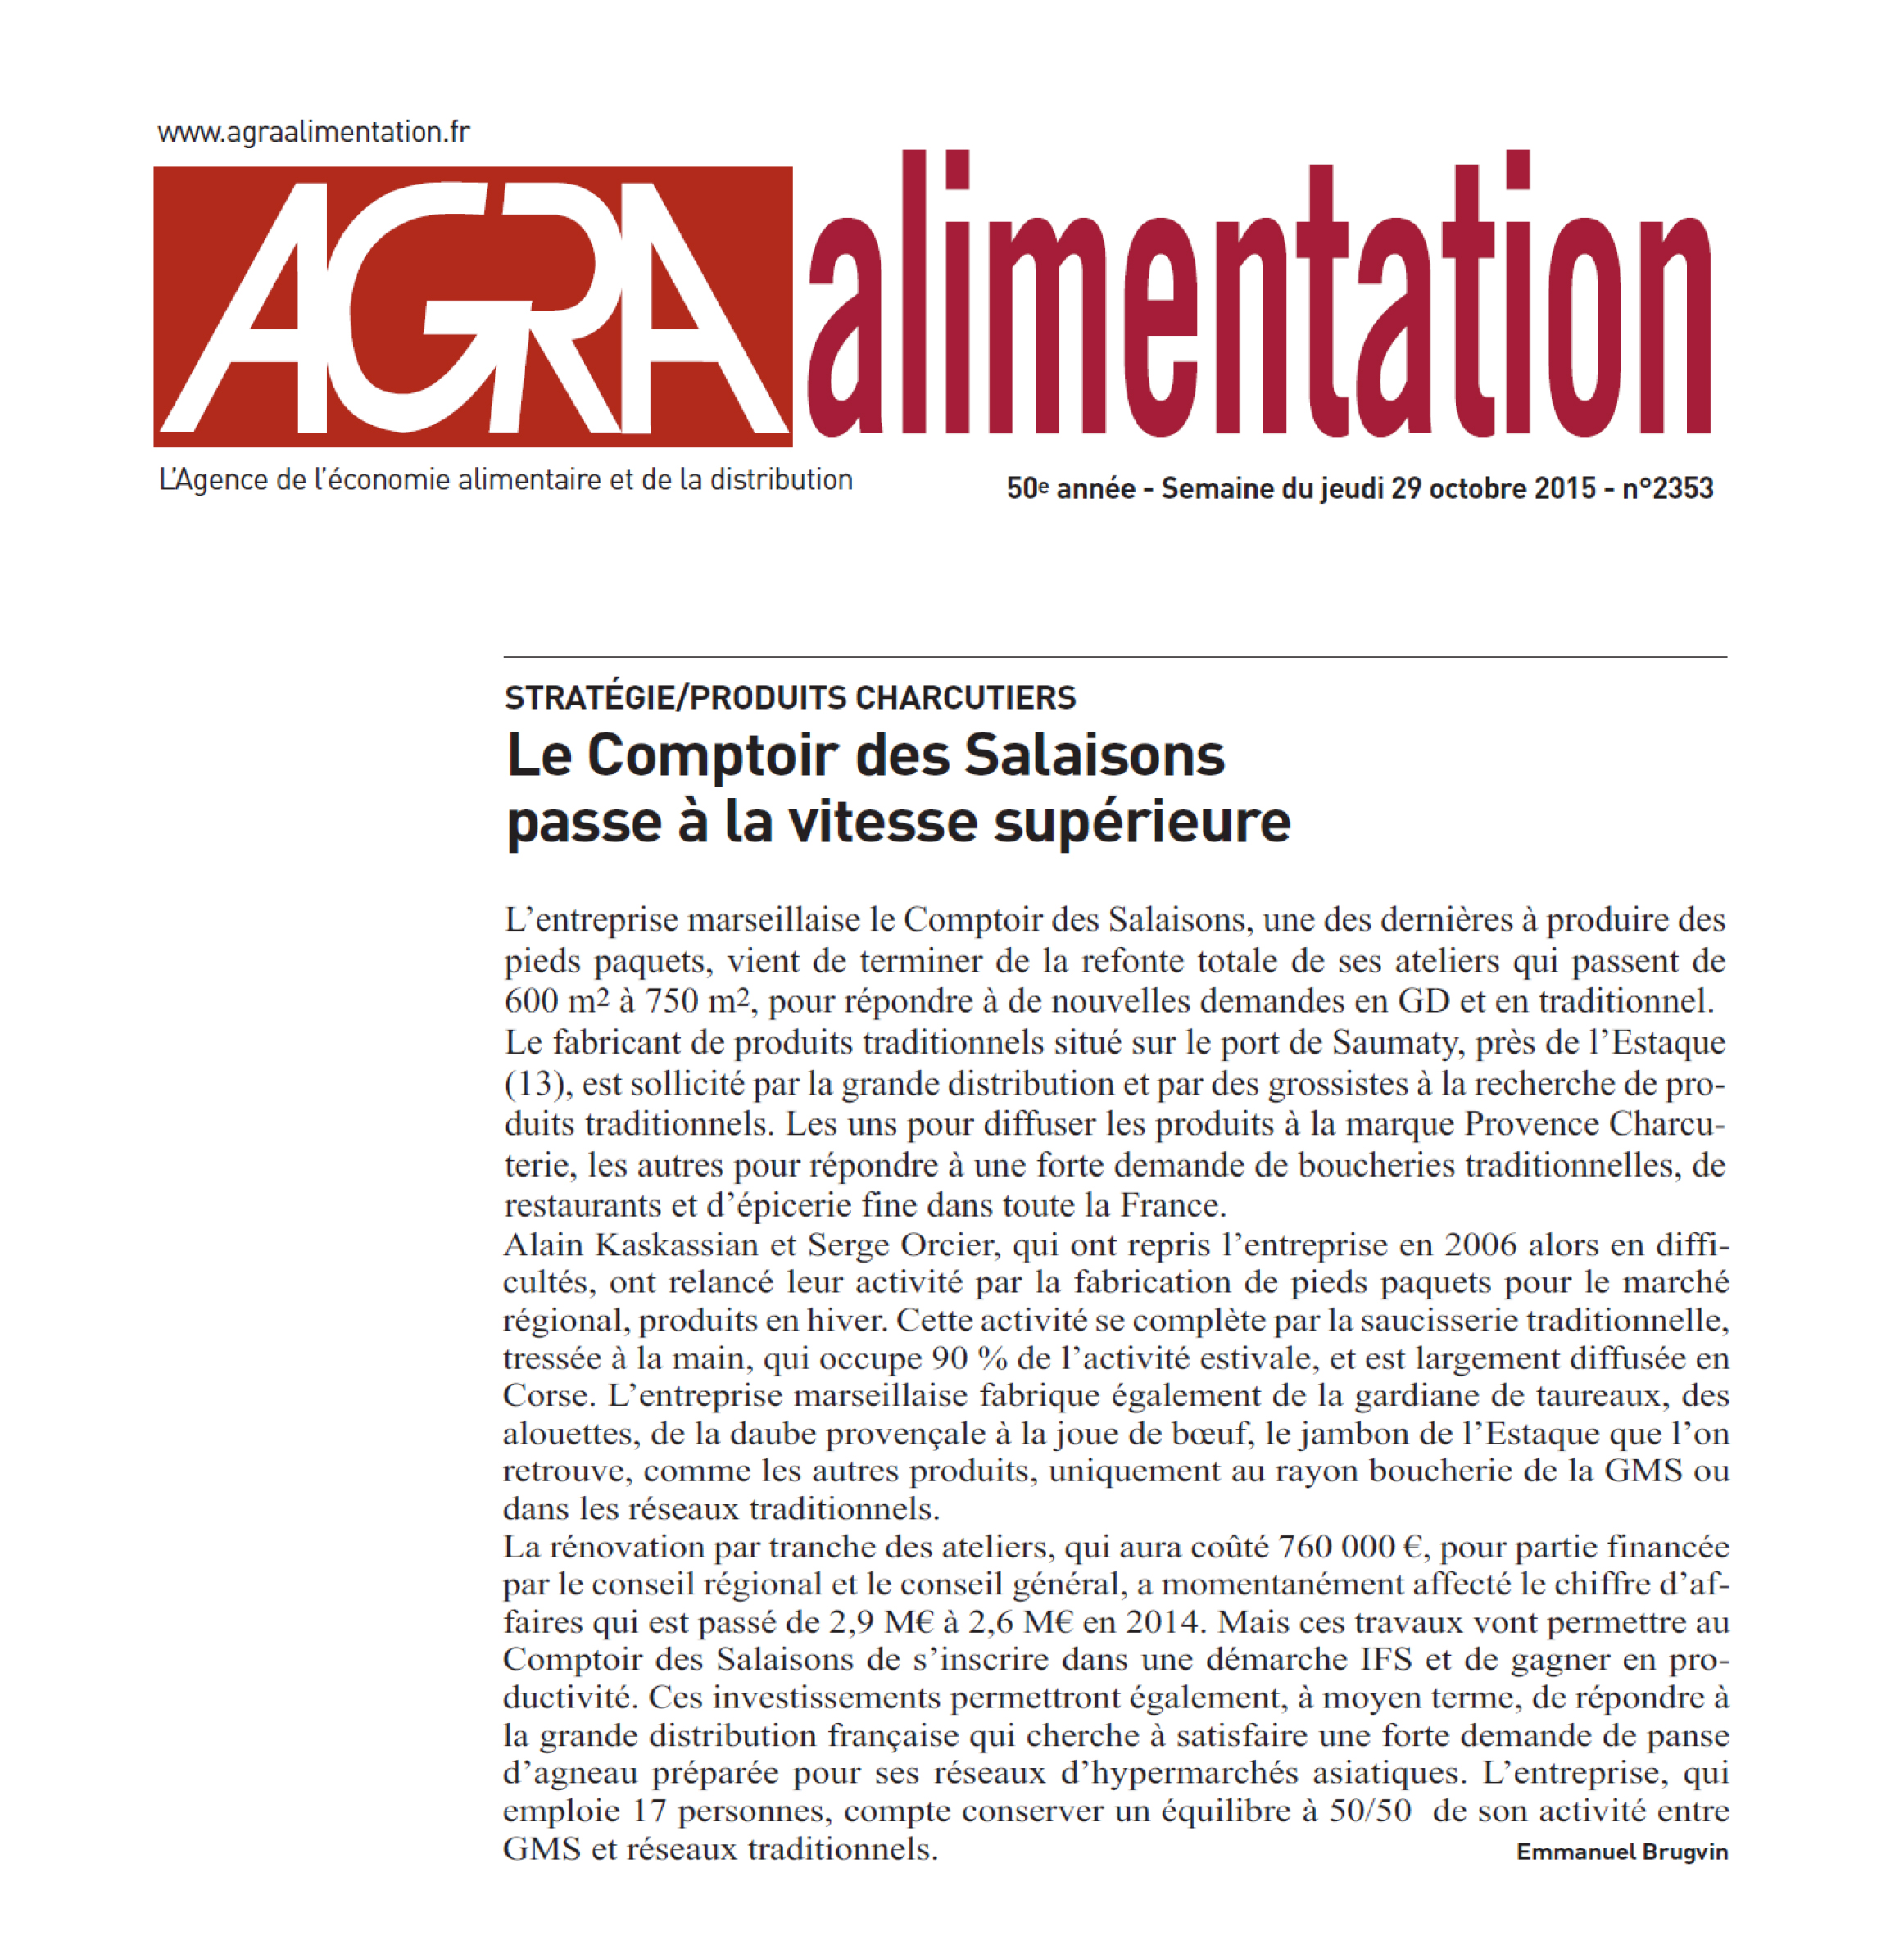 Article Agra- alimentation 26 octobre 2015